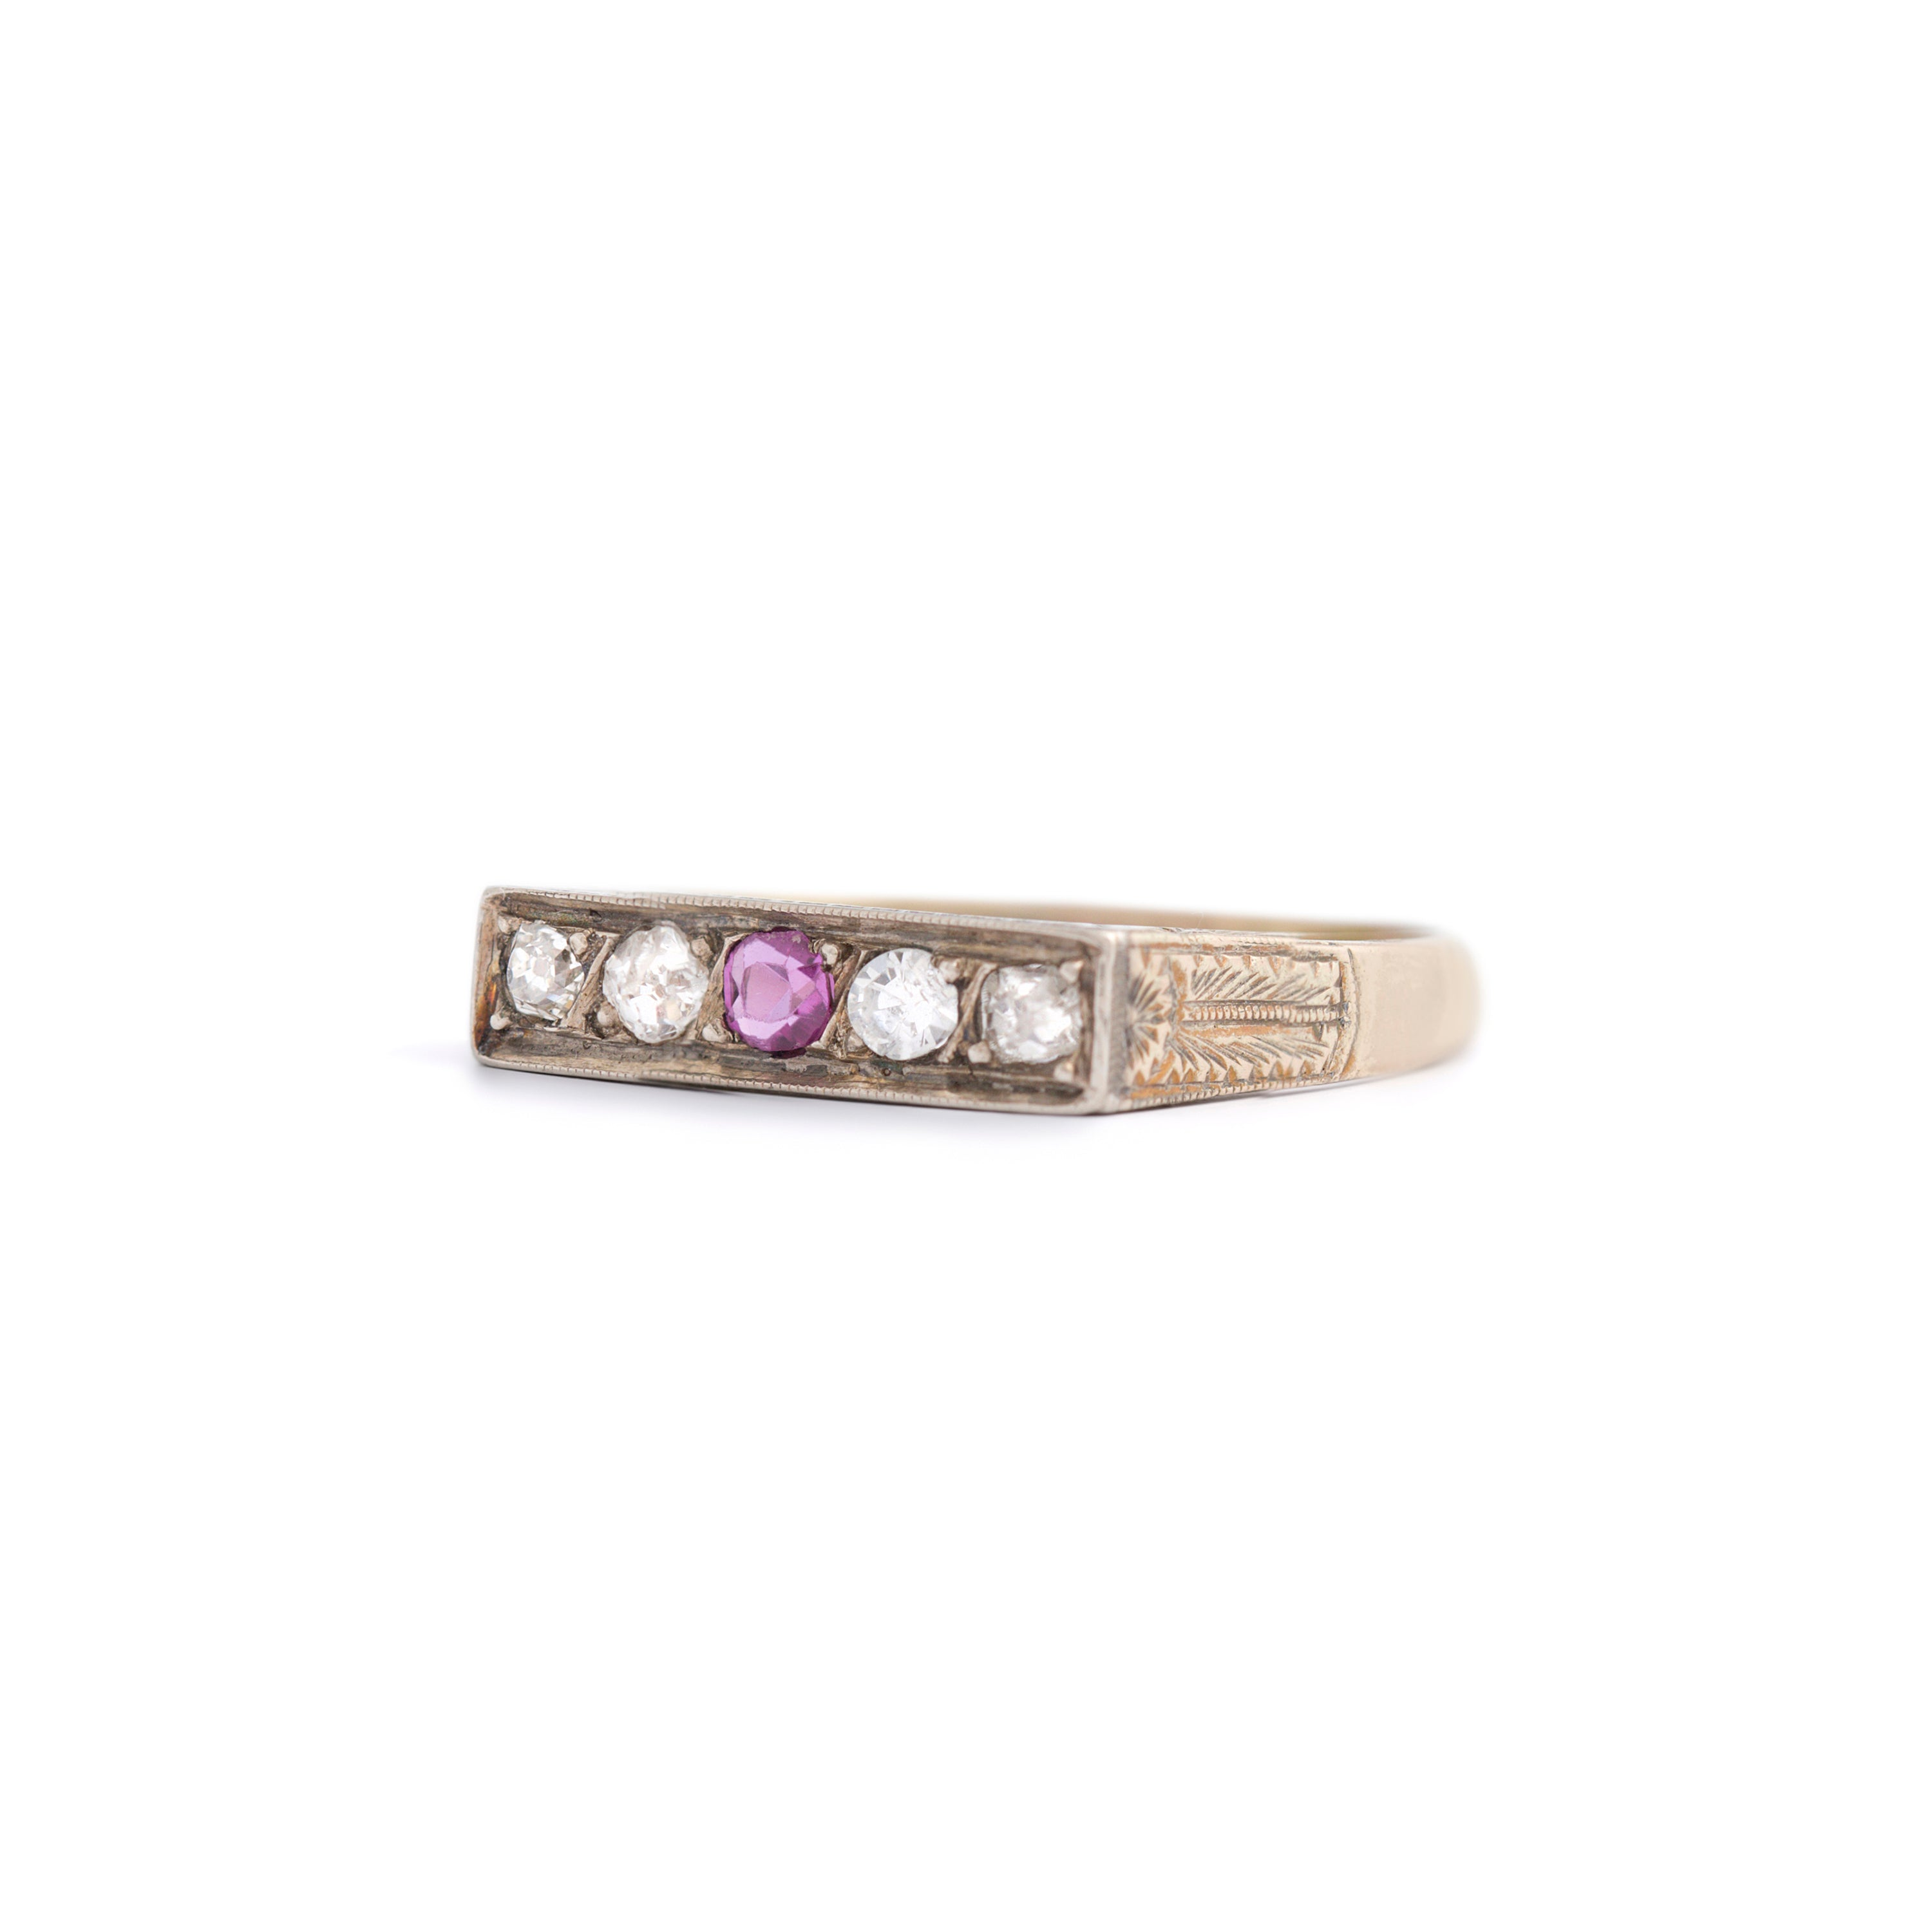 Old Mine Cut Diamond and Ruby 9k Gold Bar Ring